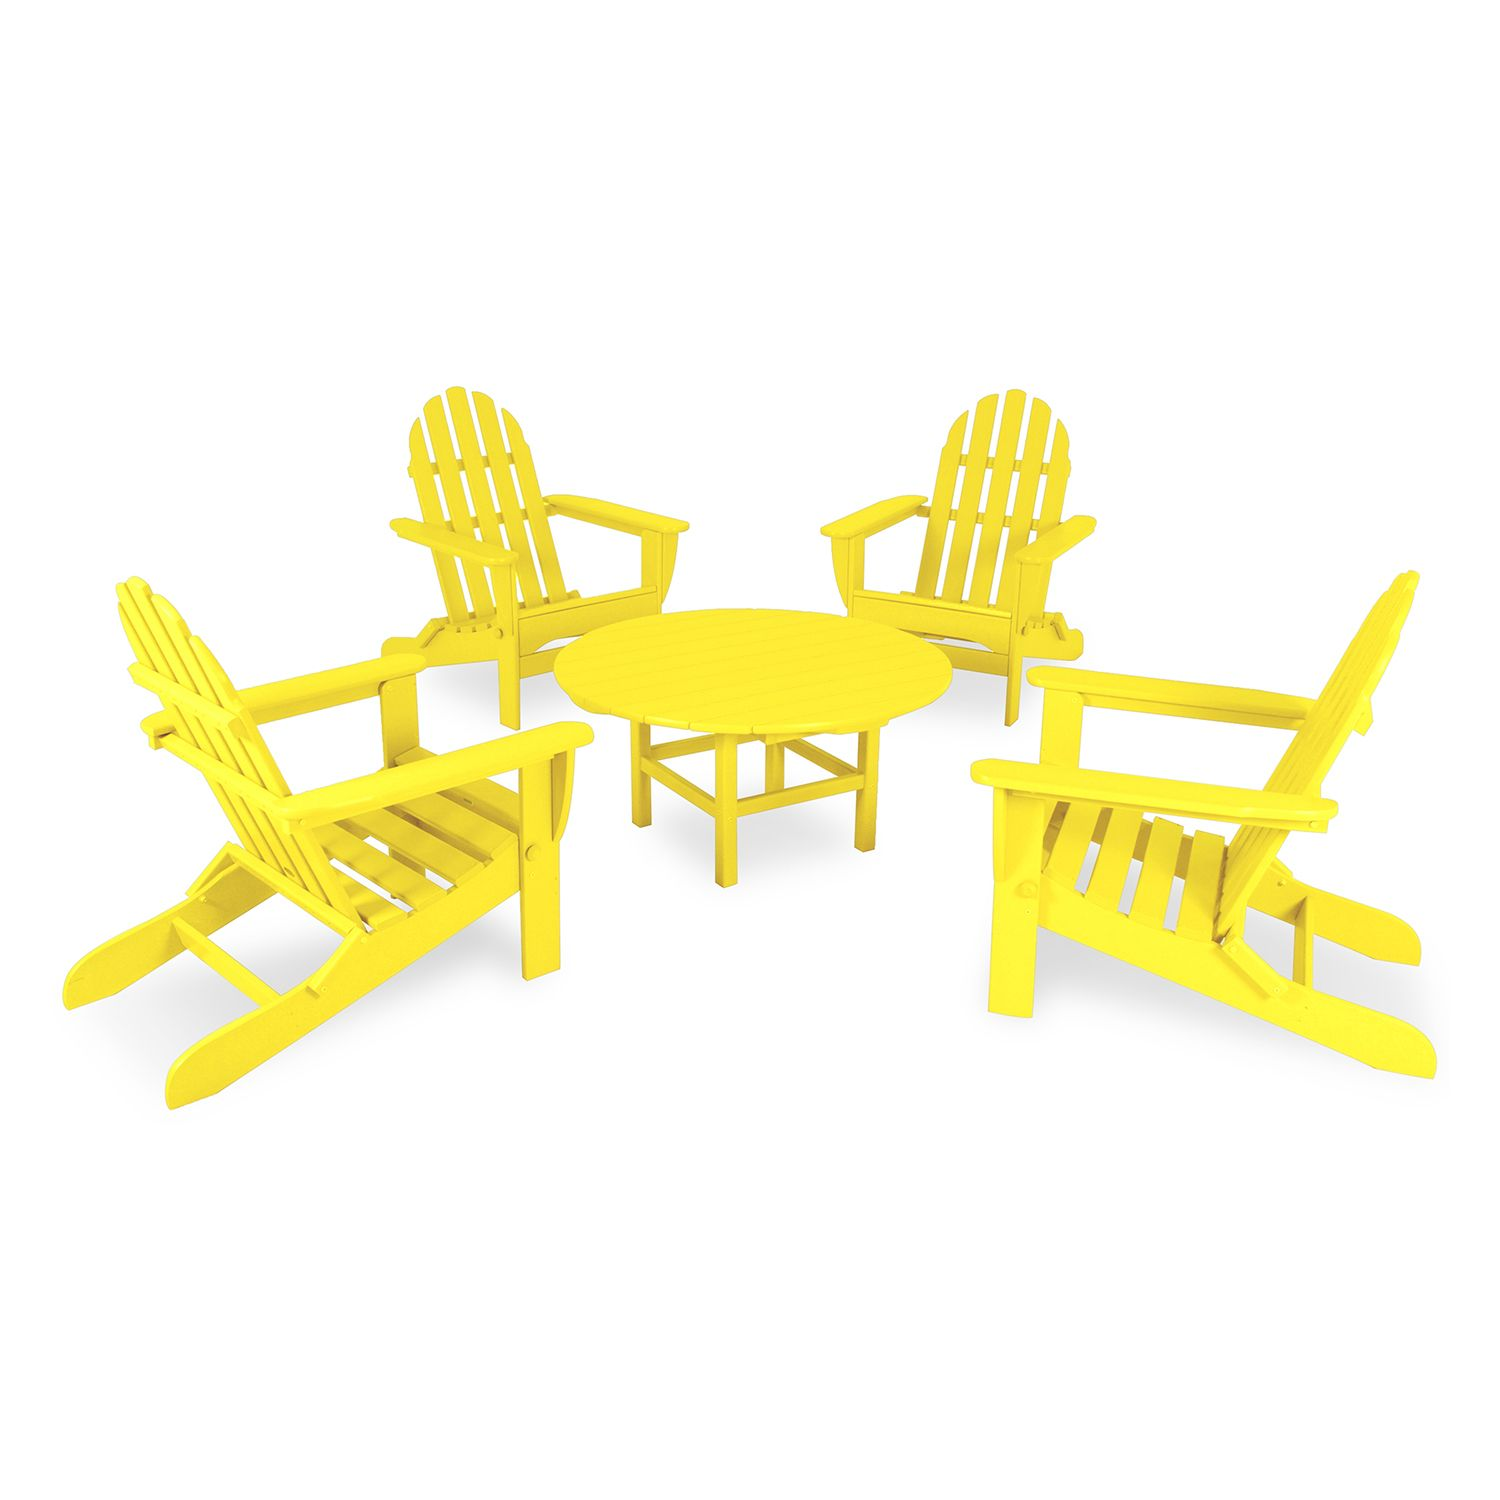 classic neon folding adirondack chair u0026 table set outdoor - Polywood Adirondack Chairs